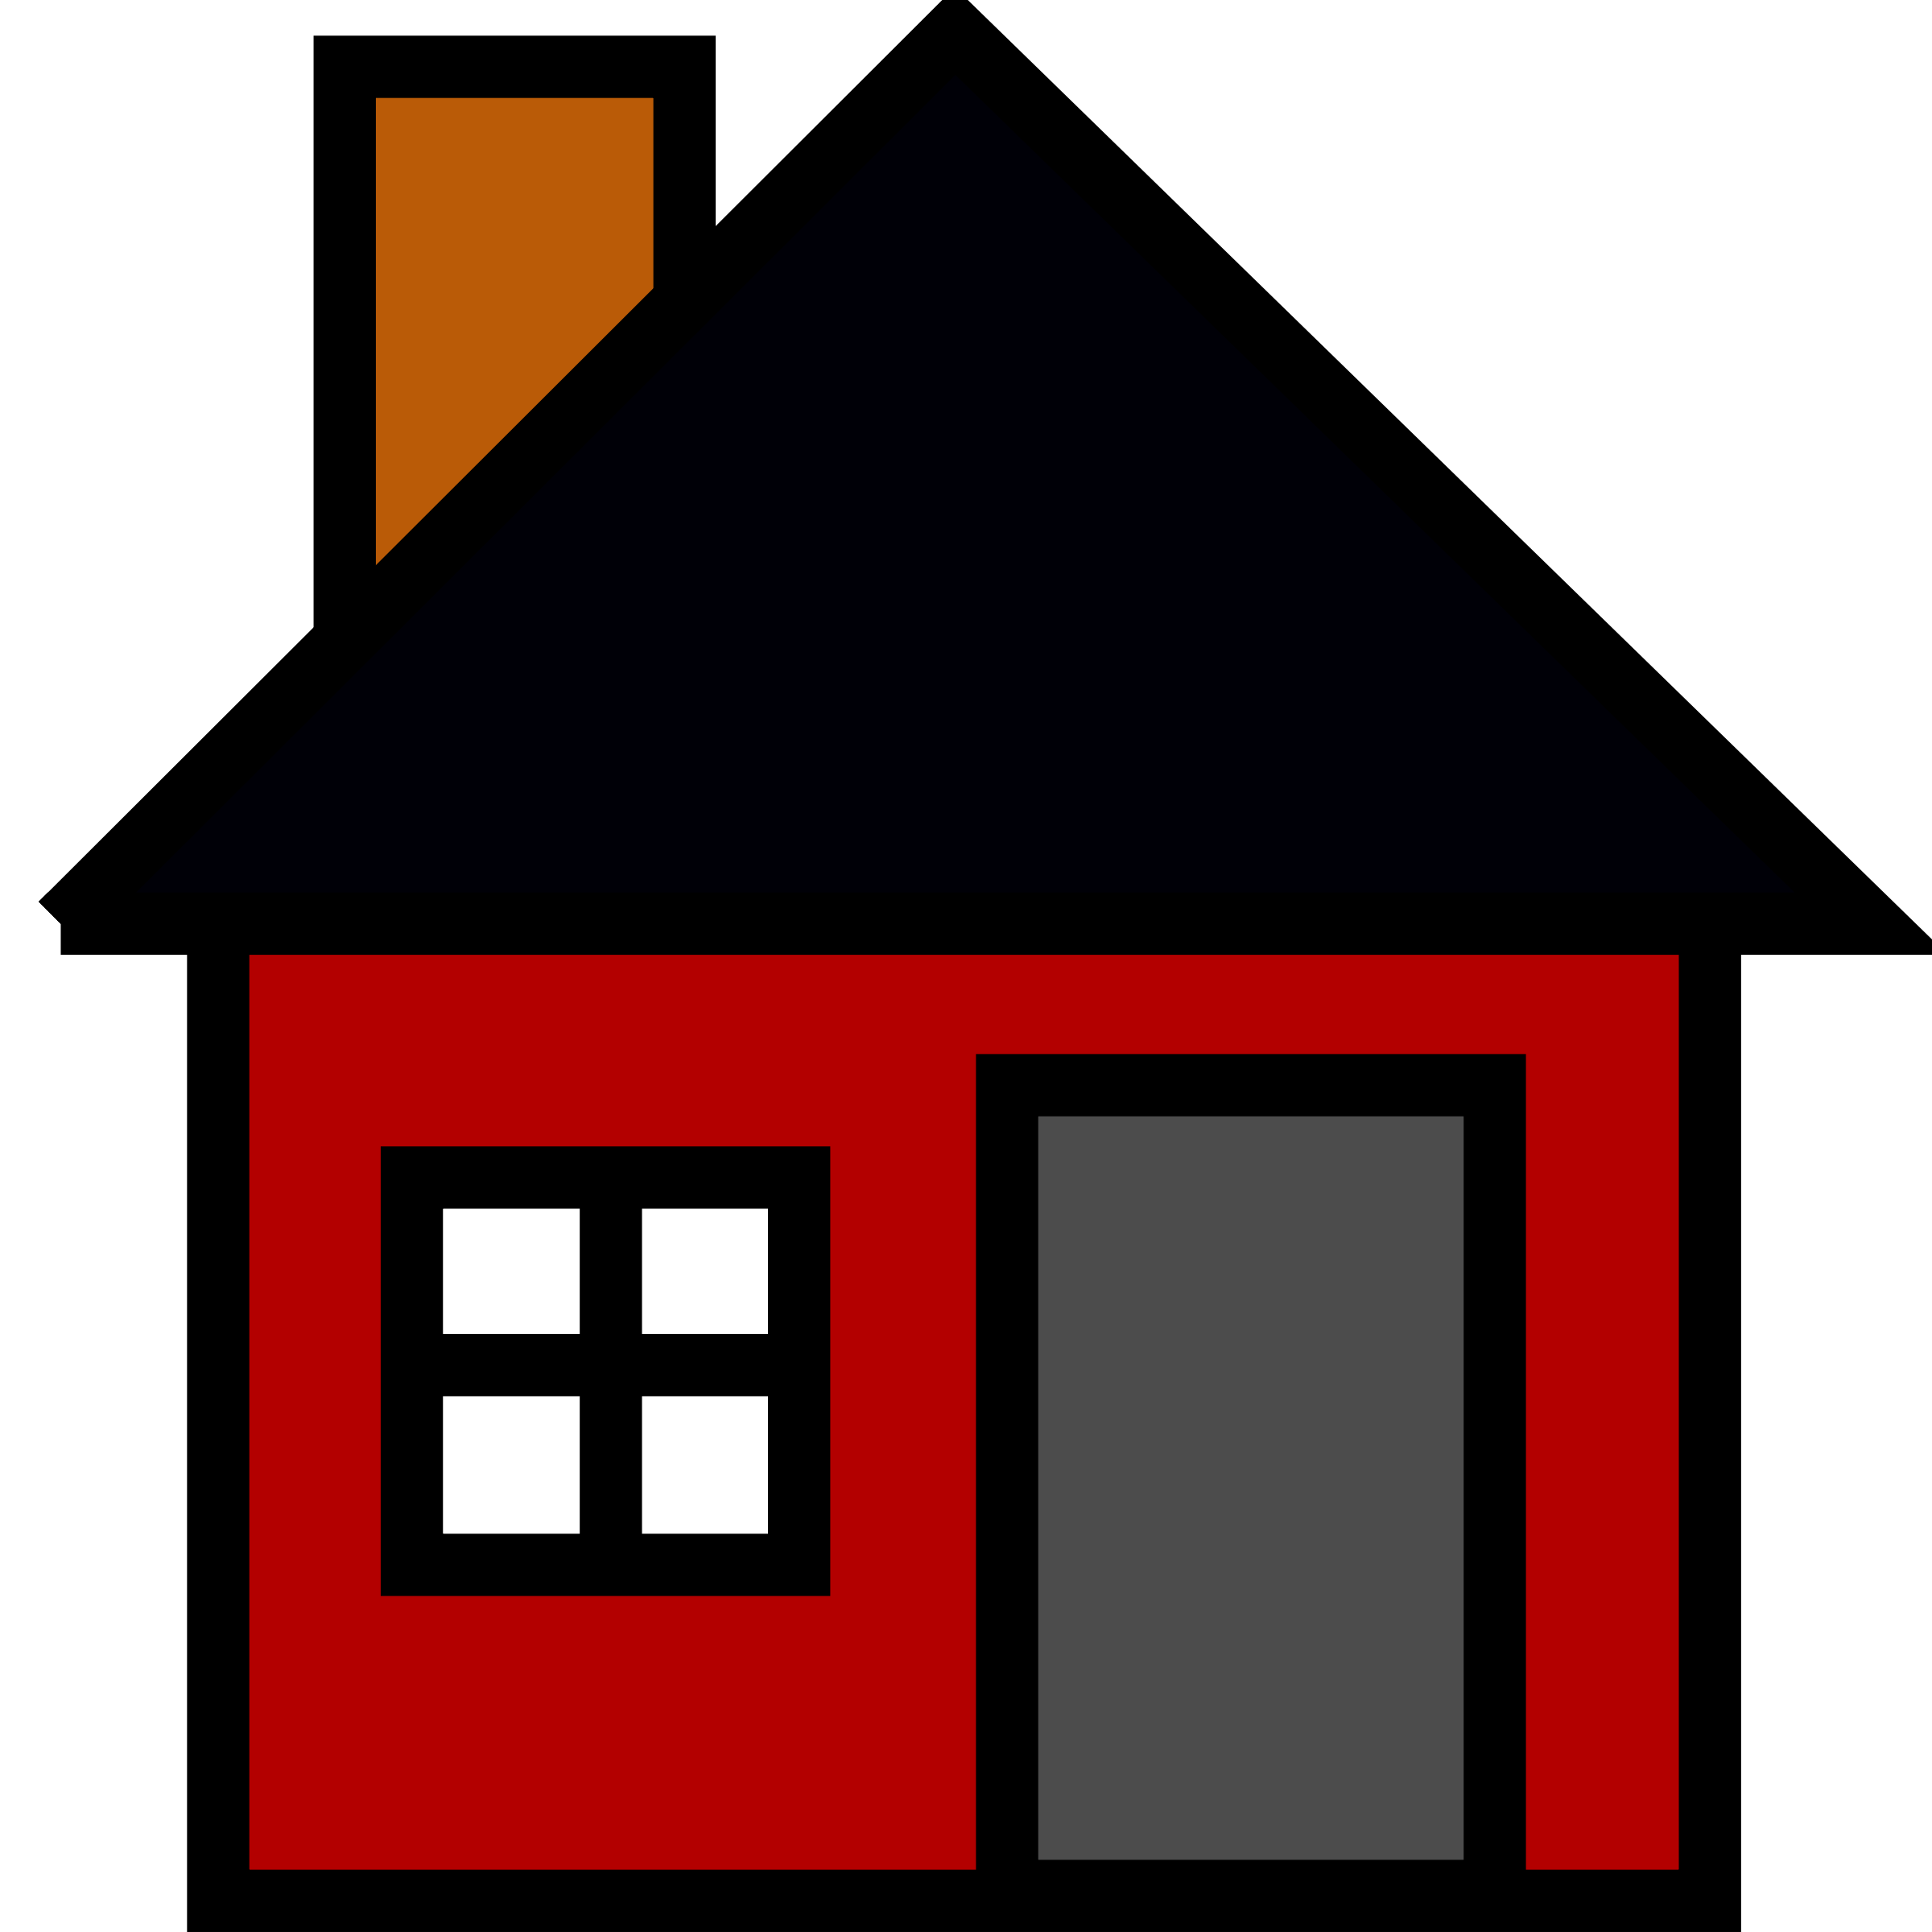 clipart transparent Policy themes rame peninsula. Mansion clipart property preservation.